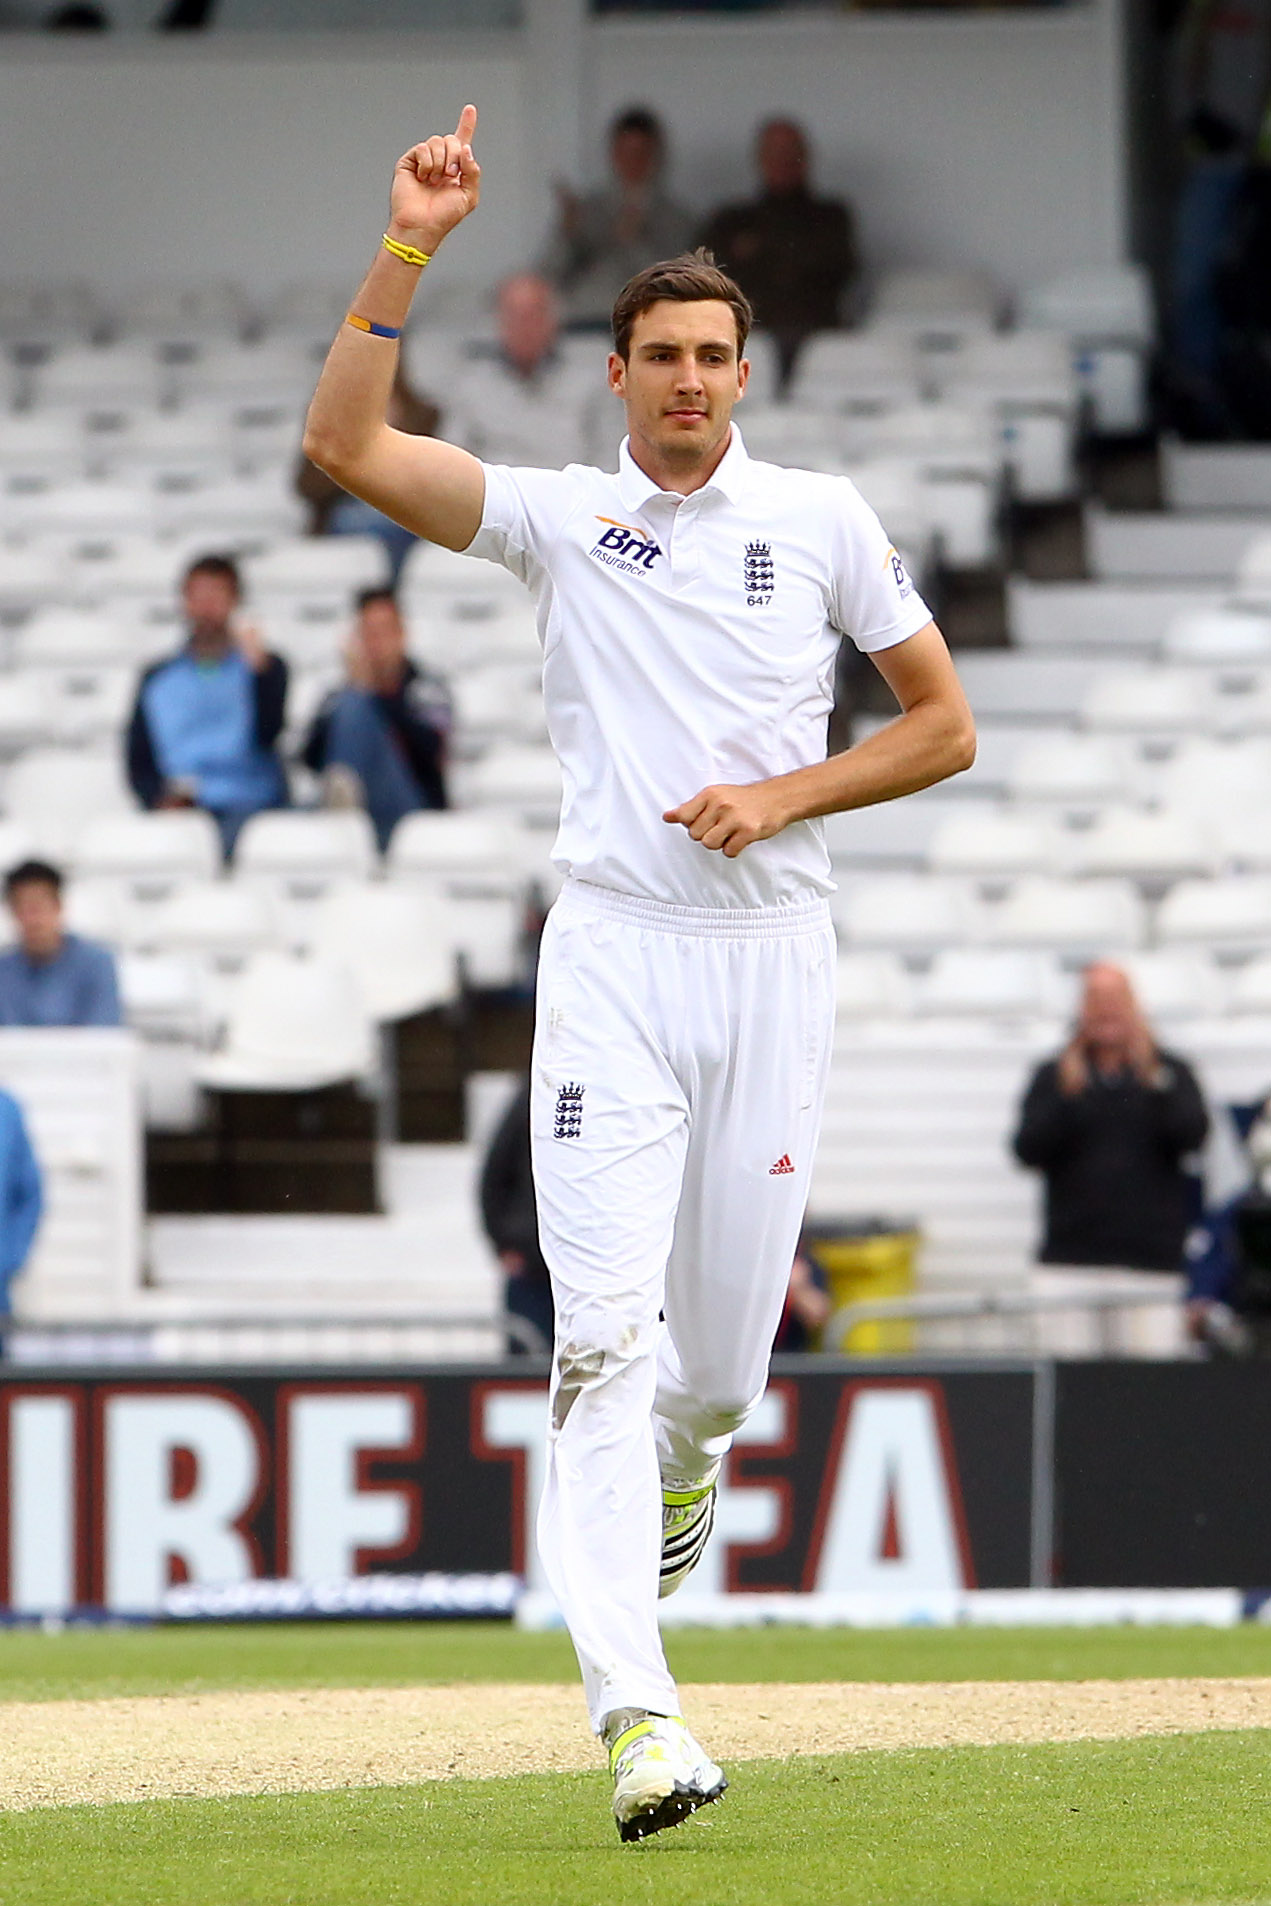 FORM GUY: Steven Finn has taken 15 wickets in his first two matches for Middlesex